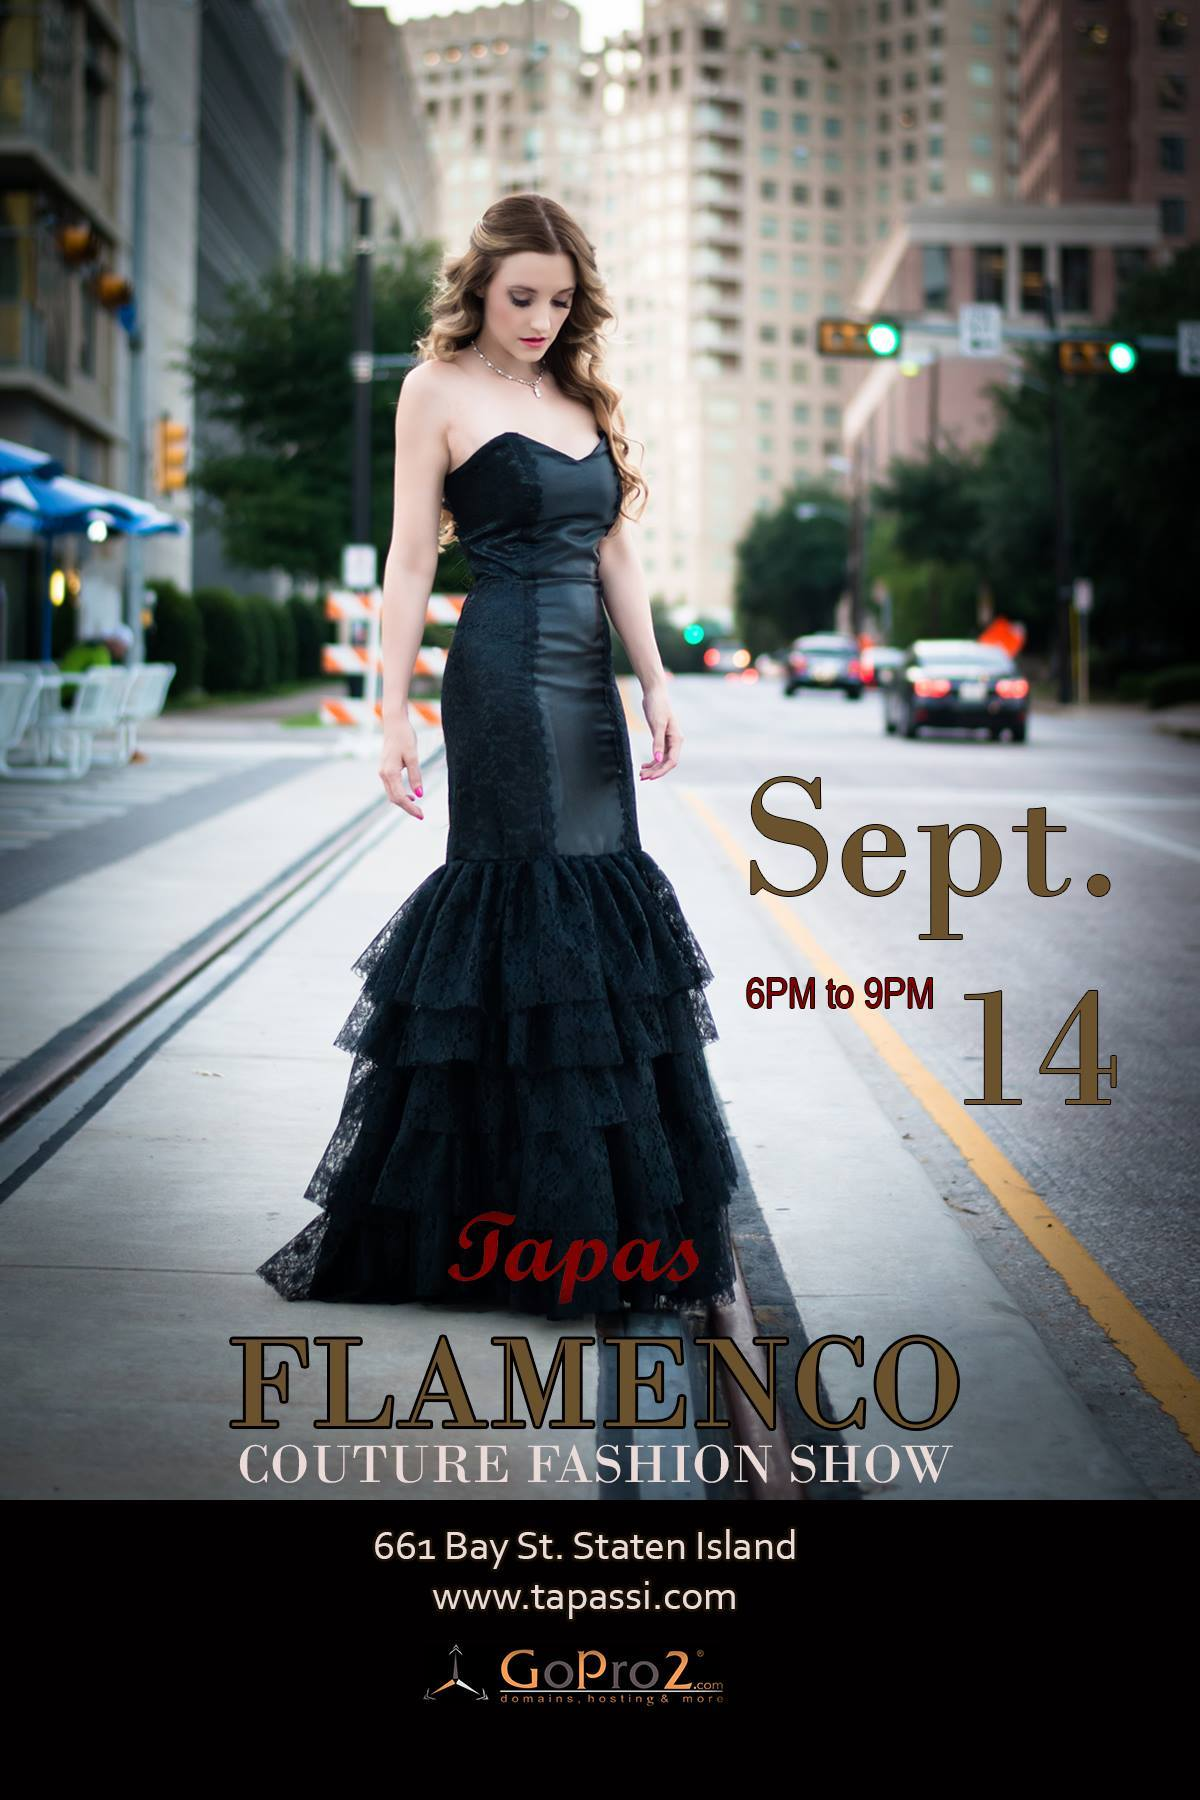 Loren Franco's dress will be showcased at Tapas Flamenco Couture Fashion Show in Staten Island on September 14, 2014.